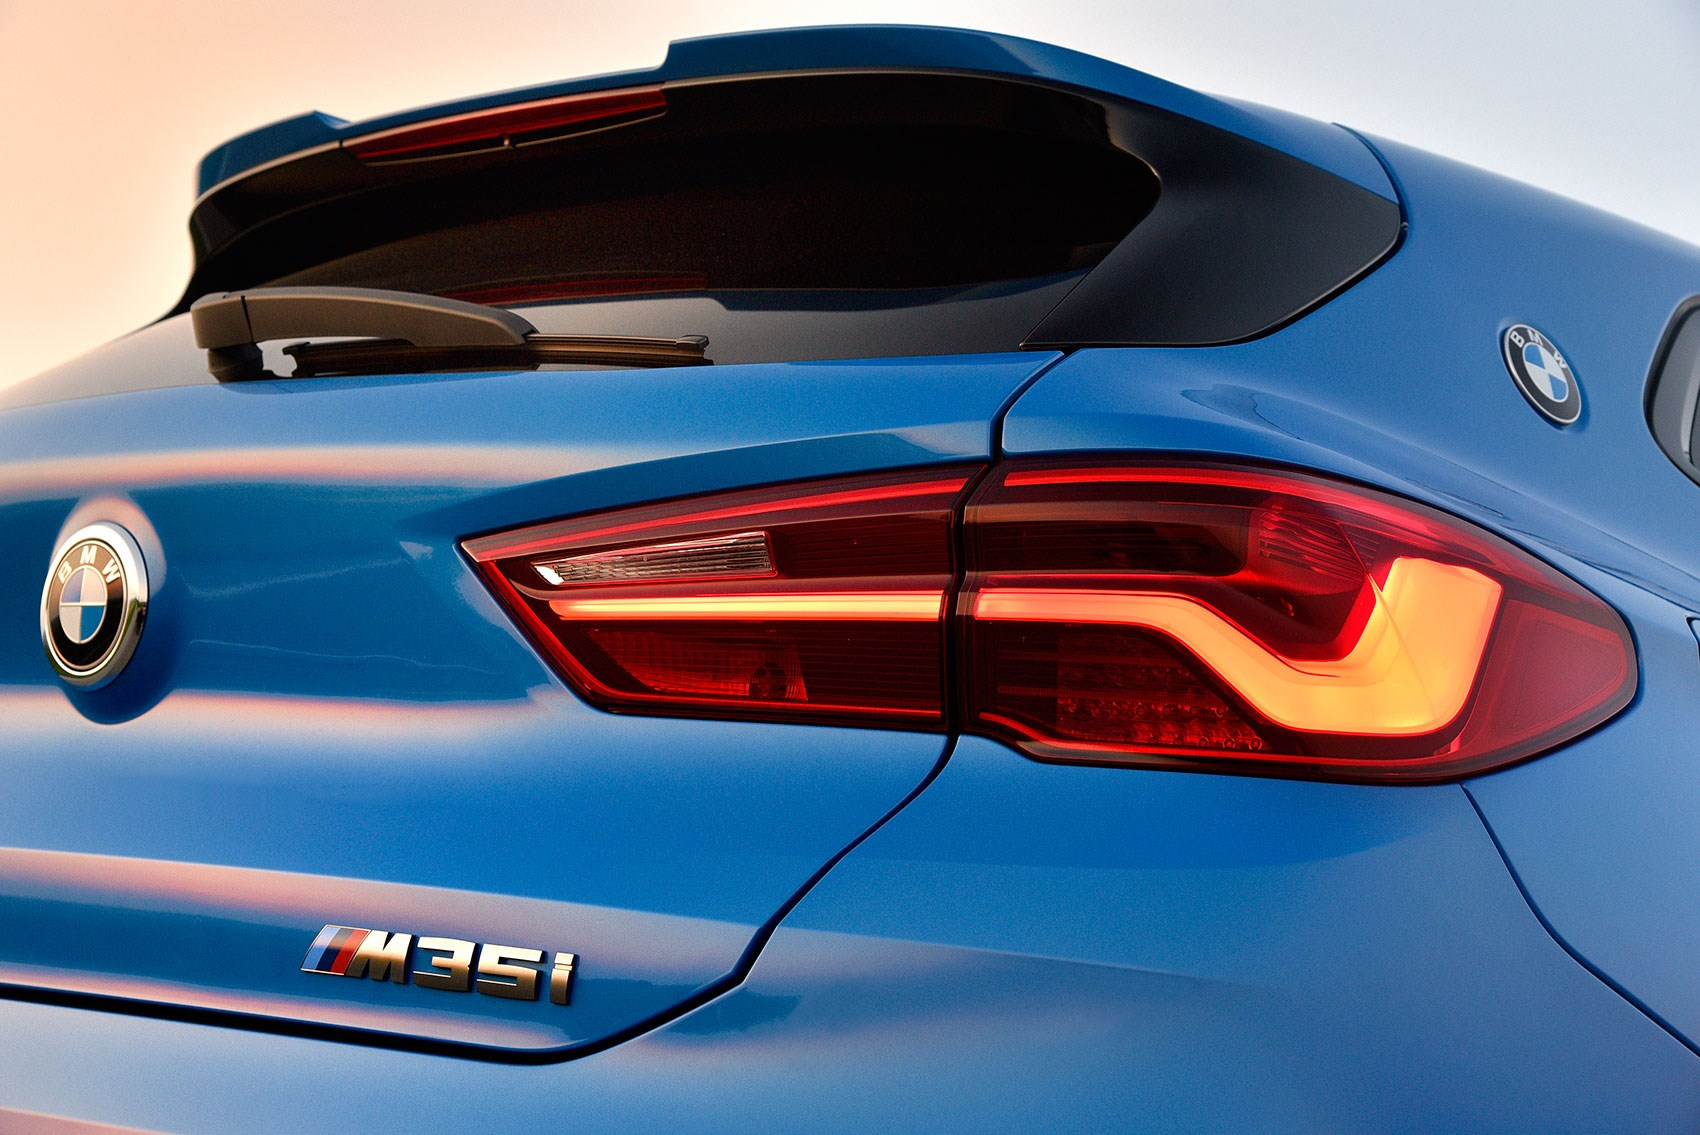 BMW X2 M35i badge